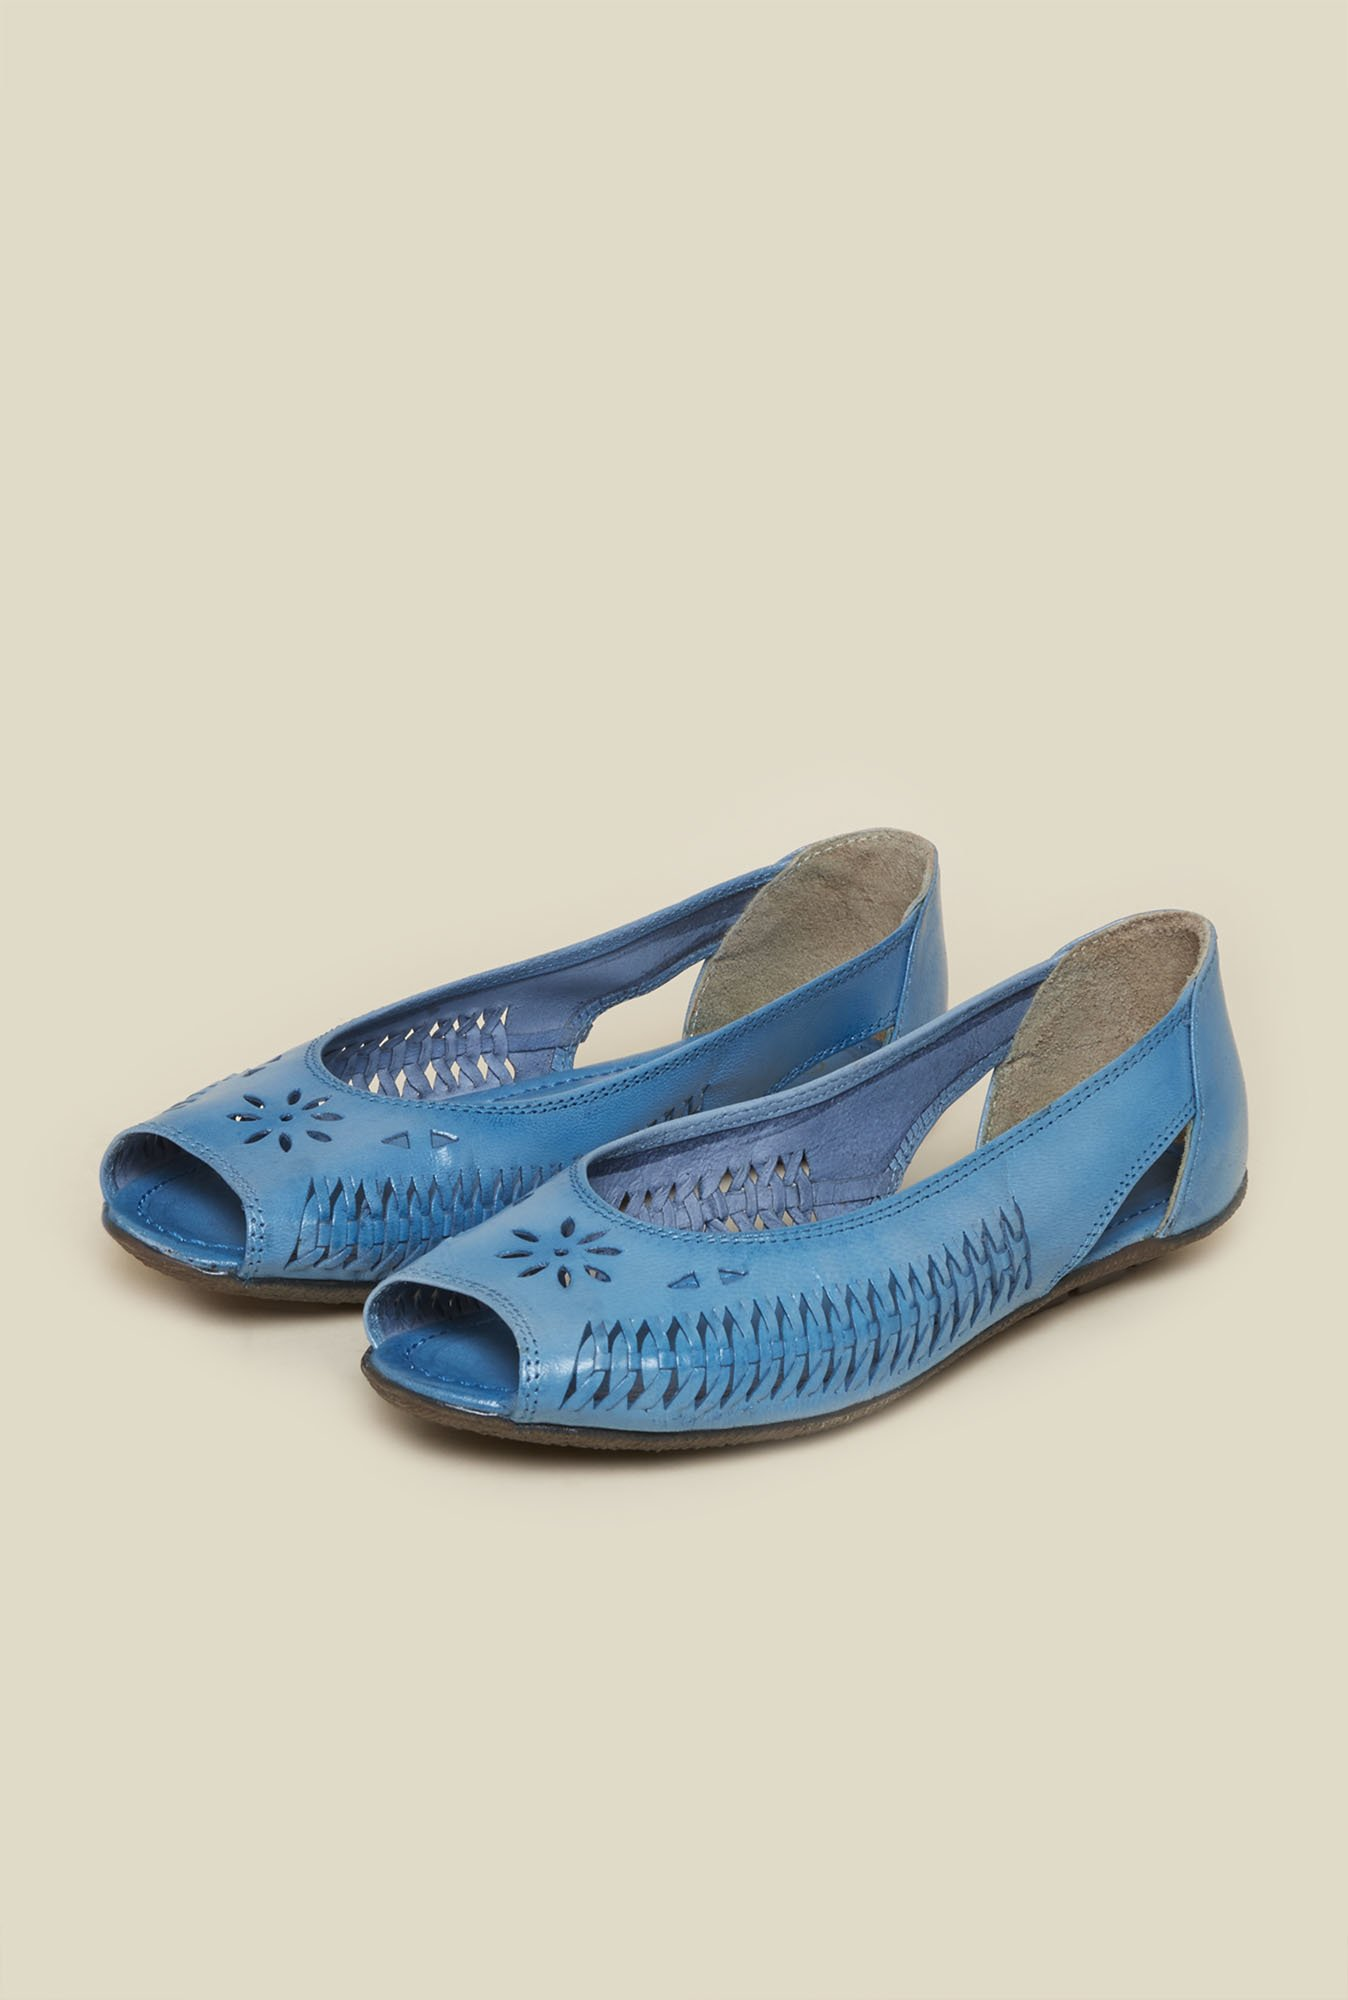 Metro Blue Peeptoe Shoes